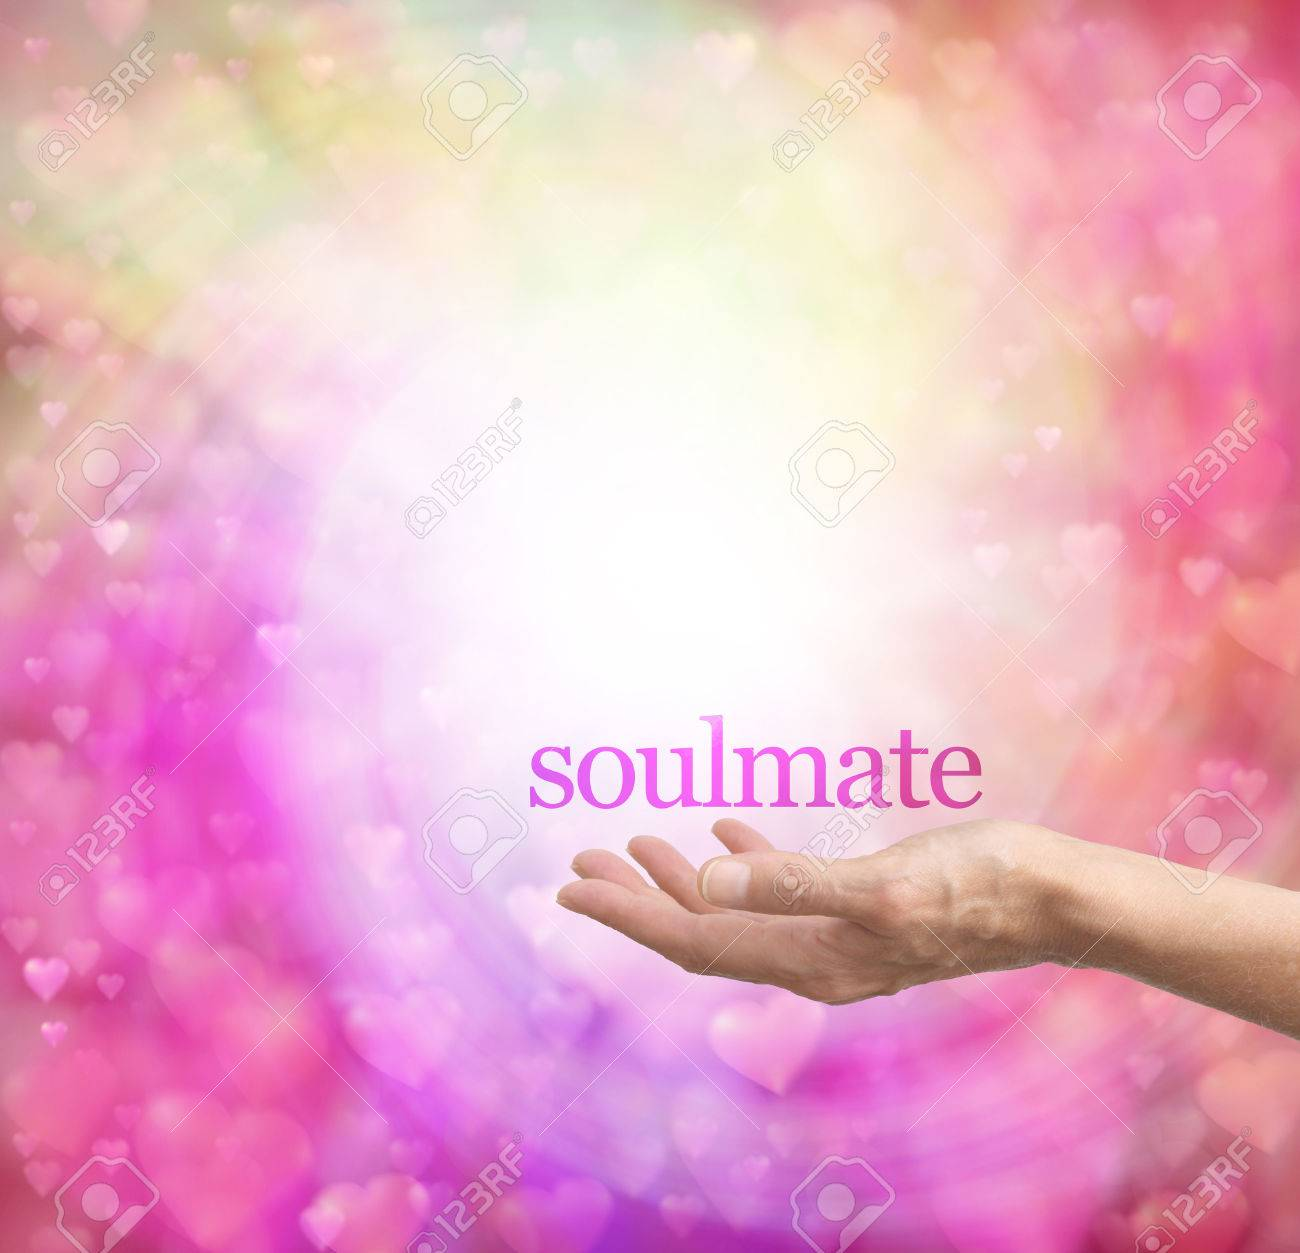 Seeking A Soulmate - Female Hand Palm Up With The Word Soulmate ...